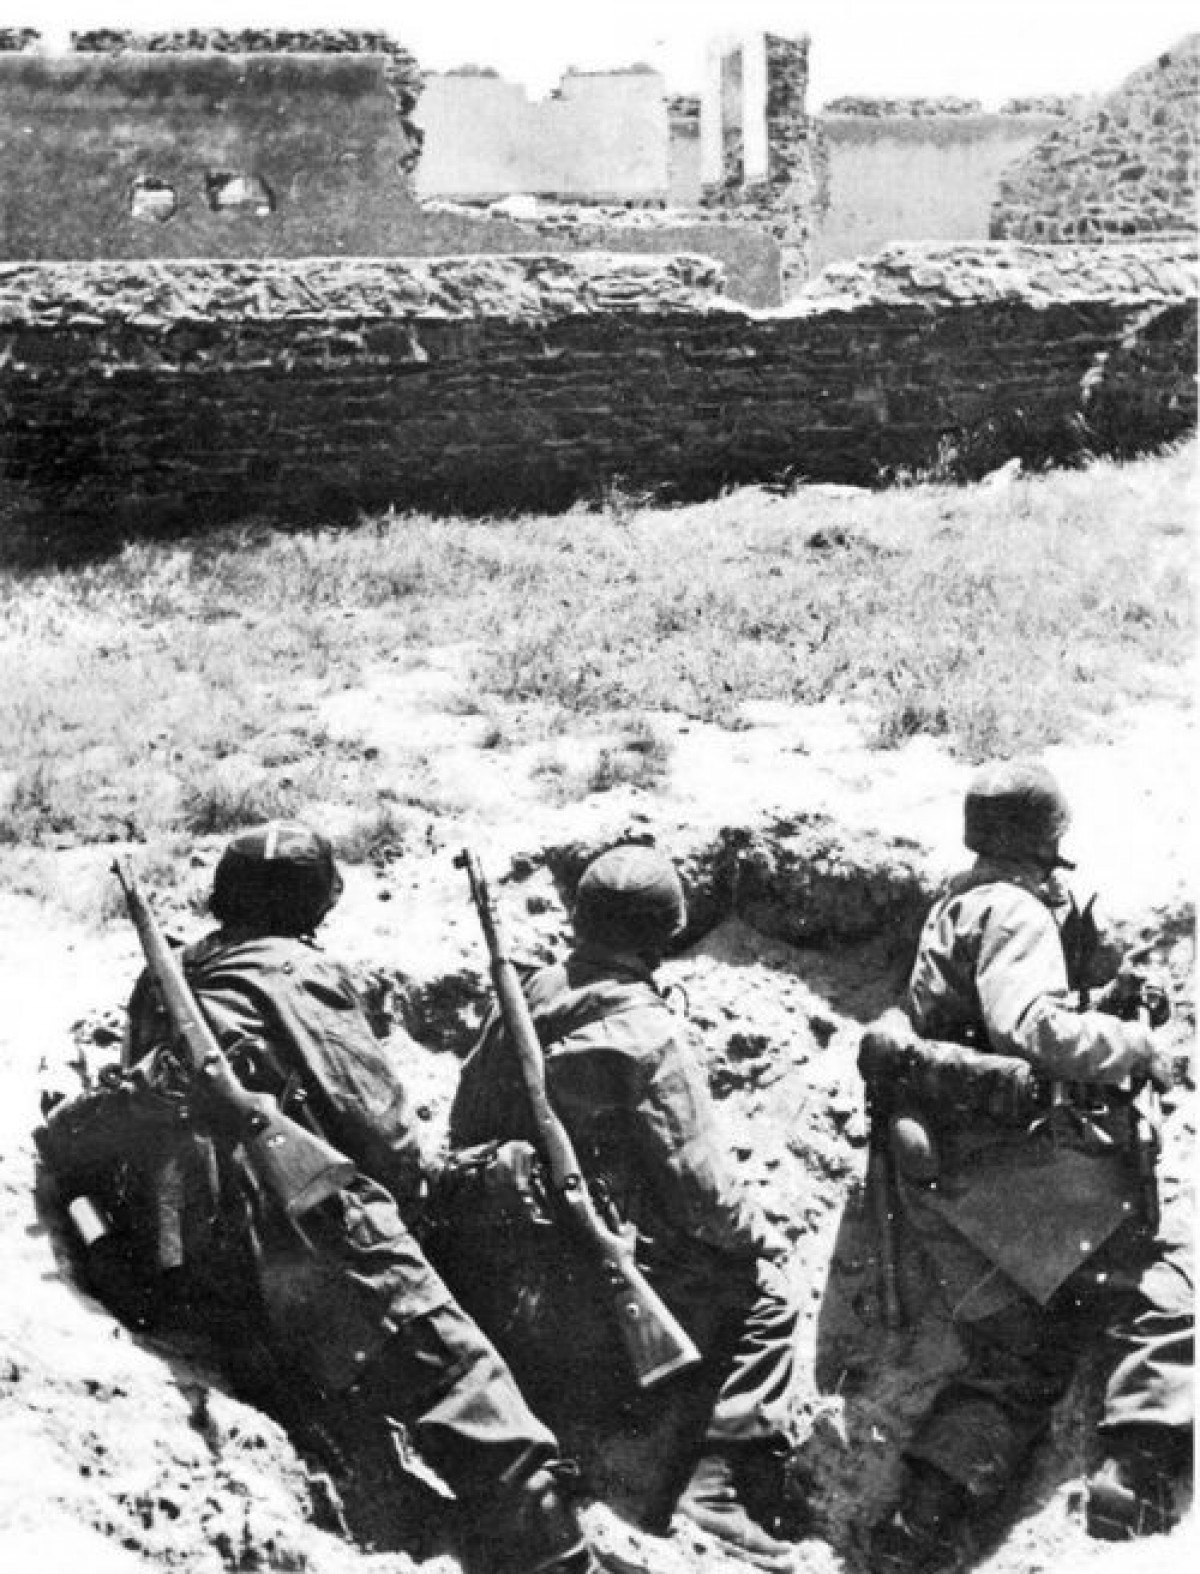 German fllschirmjäger in Crete, 1941